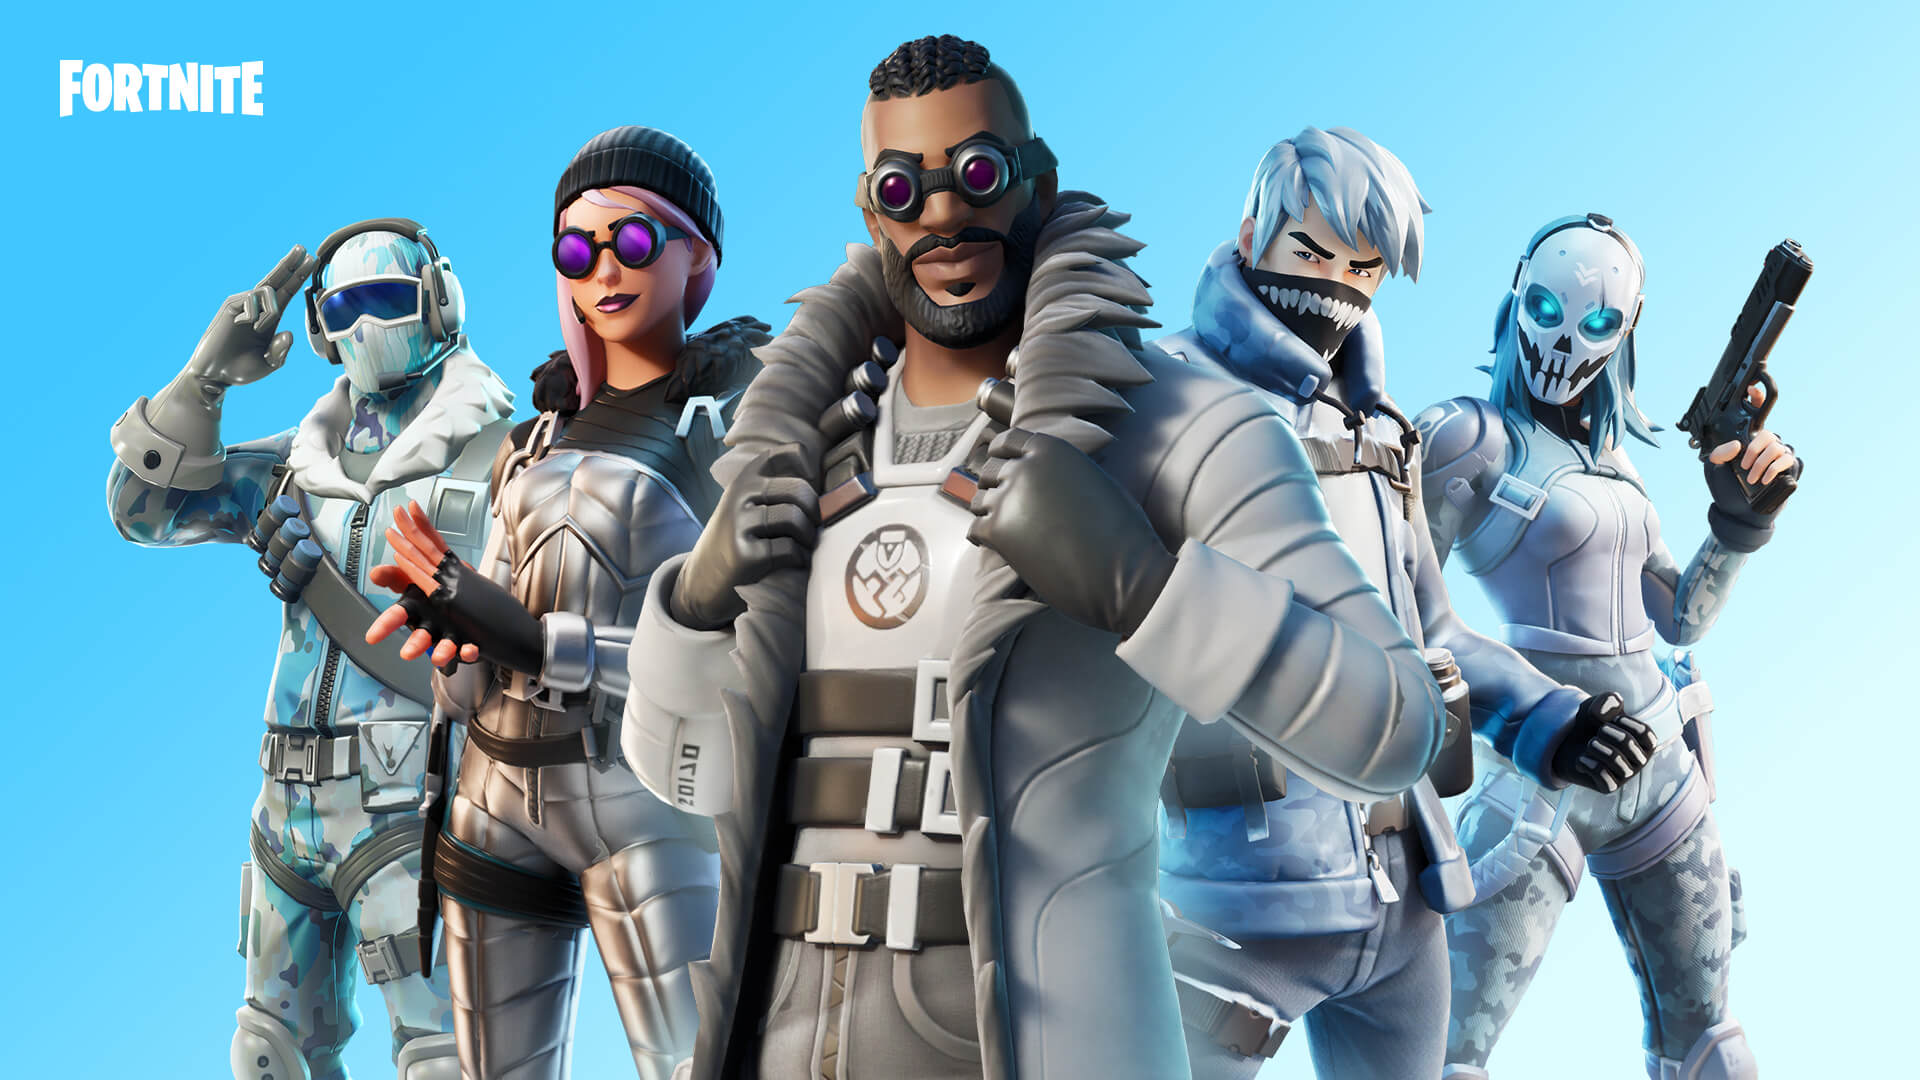 Blood Vs Crip Fortnite The Best Fortnite Creative Map Codes For The Week Of December 8 2020